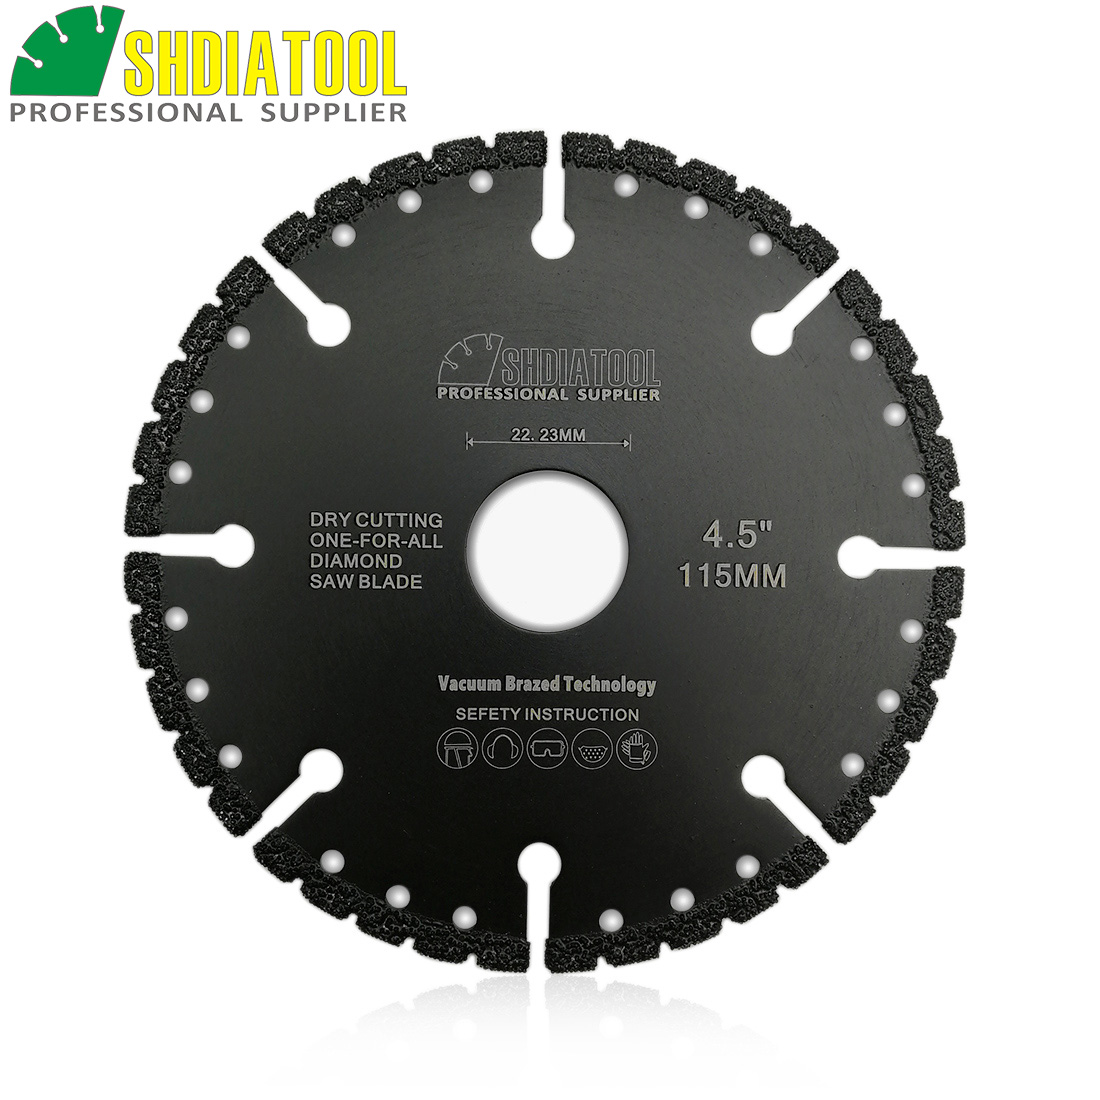 SHDIATOOL 115mm Vacuum Brazed Diamond Blade For All Purpose For Stone Iron Cast Steel Aluminum 4.5